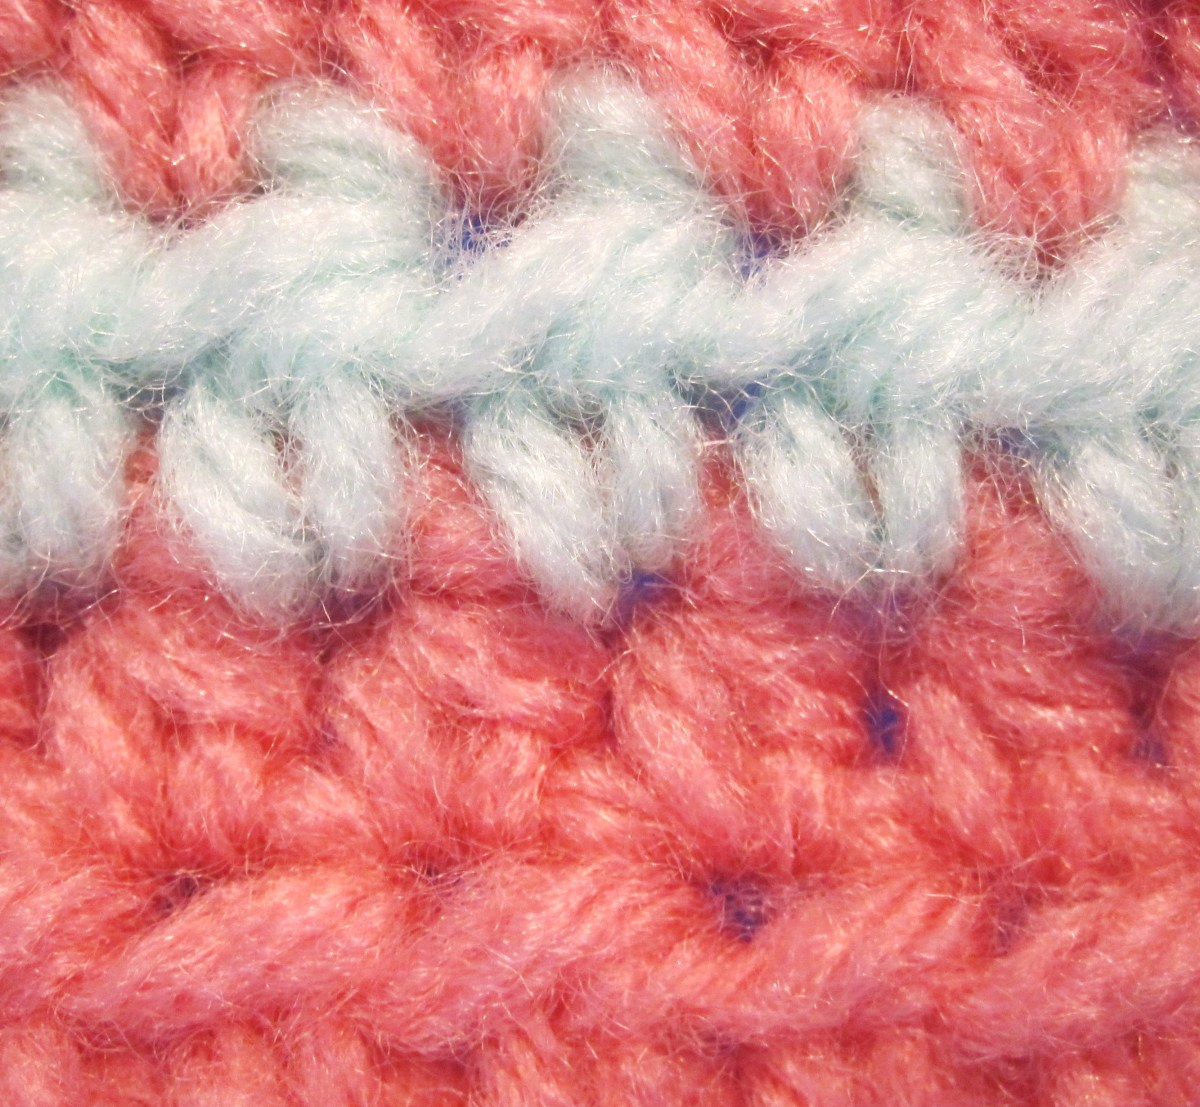 Crochet Stitch Quick Reference : Crochet Stitches, Detailed Instructions With Videos to Help You Follow ...